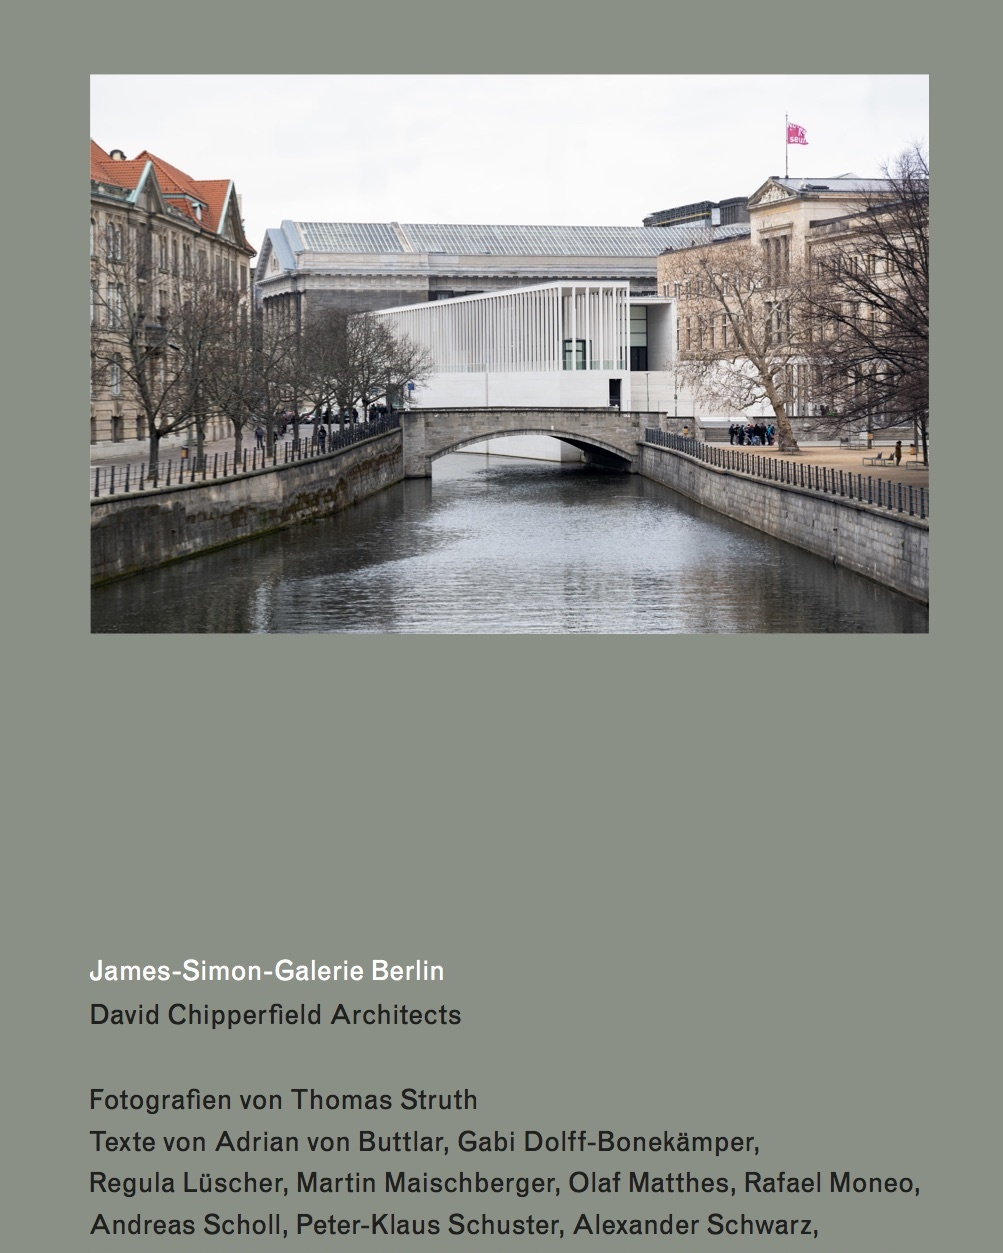 James-Simon-Galerie Berlin , David Chipperfield Architects, Verlag der Buchhandlung Walther König in collaboration with Thames and Hudson, 2019   Editing and translations